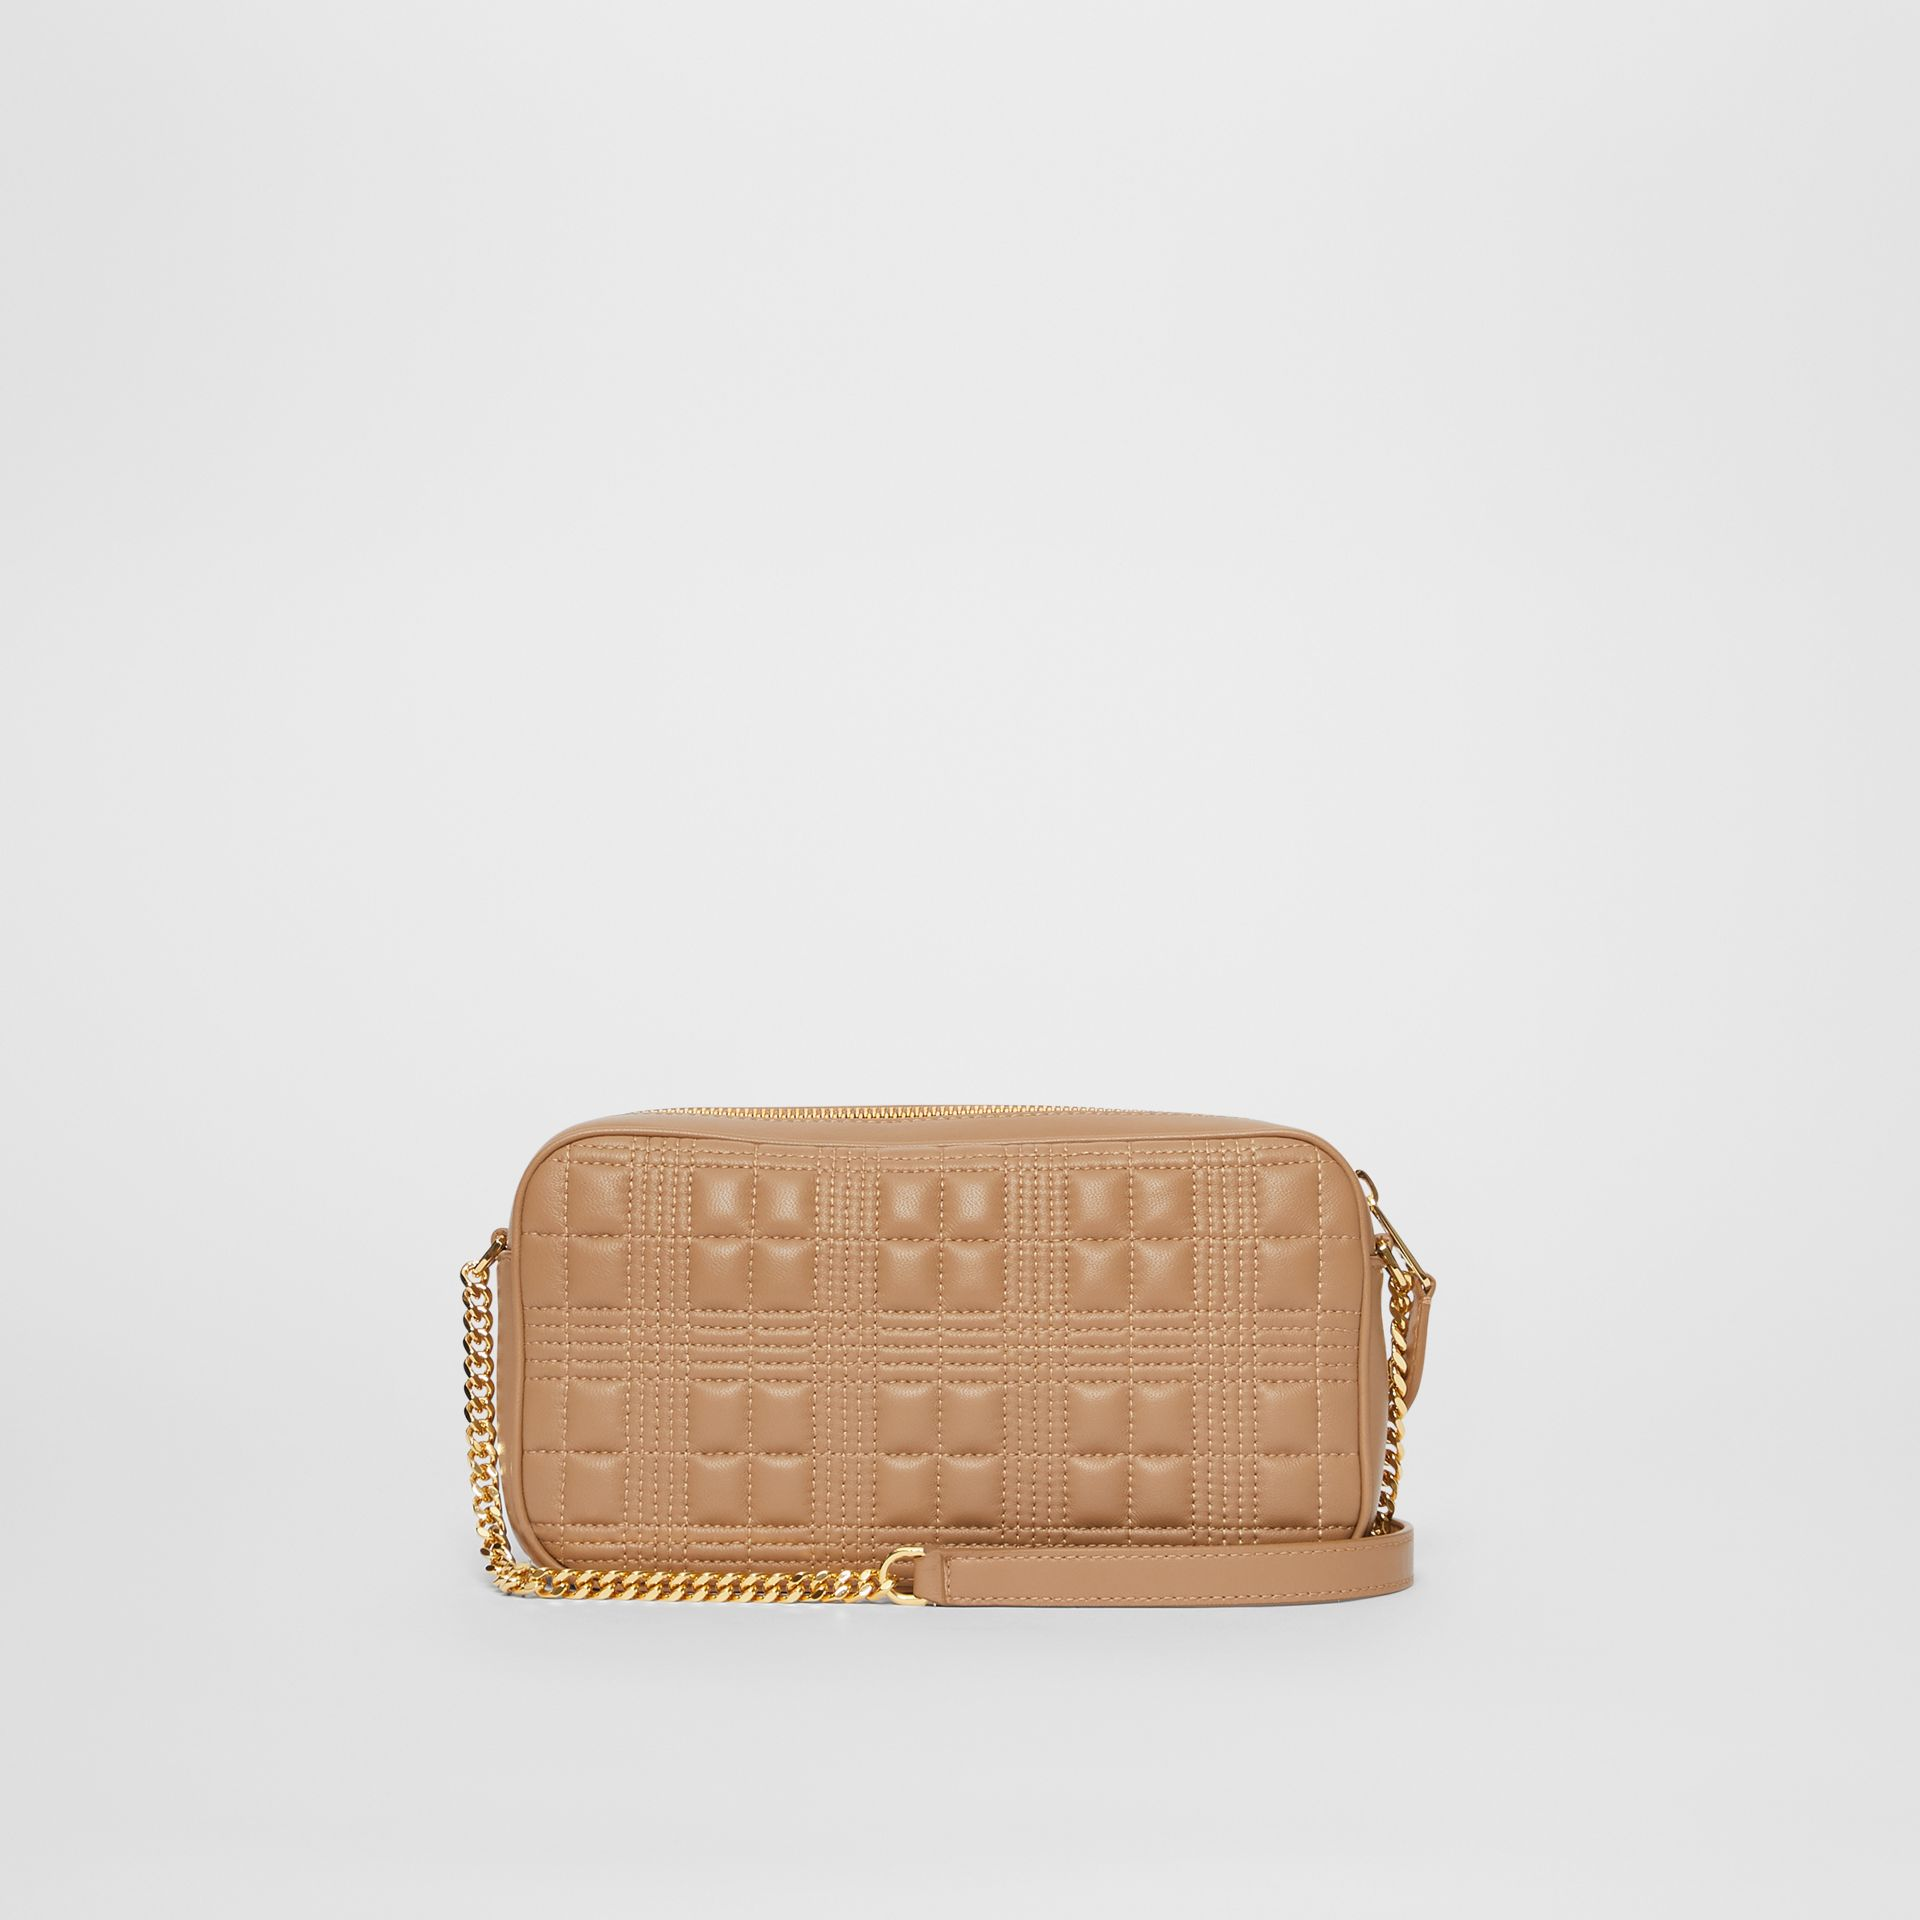 Quilted Check Lambskin Camera Bag in Camel - Women | Burberry - gallery image 7